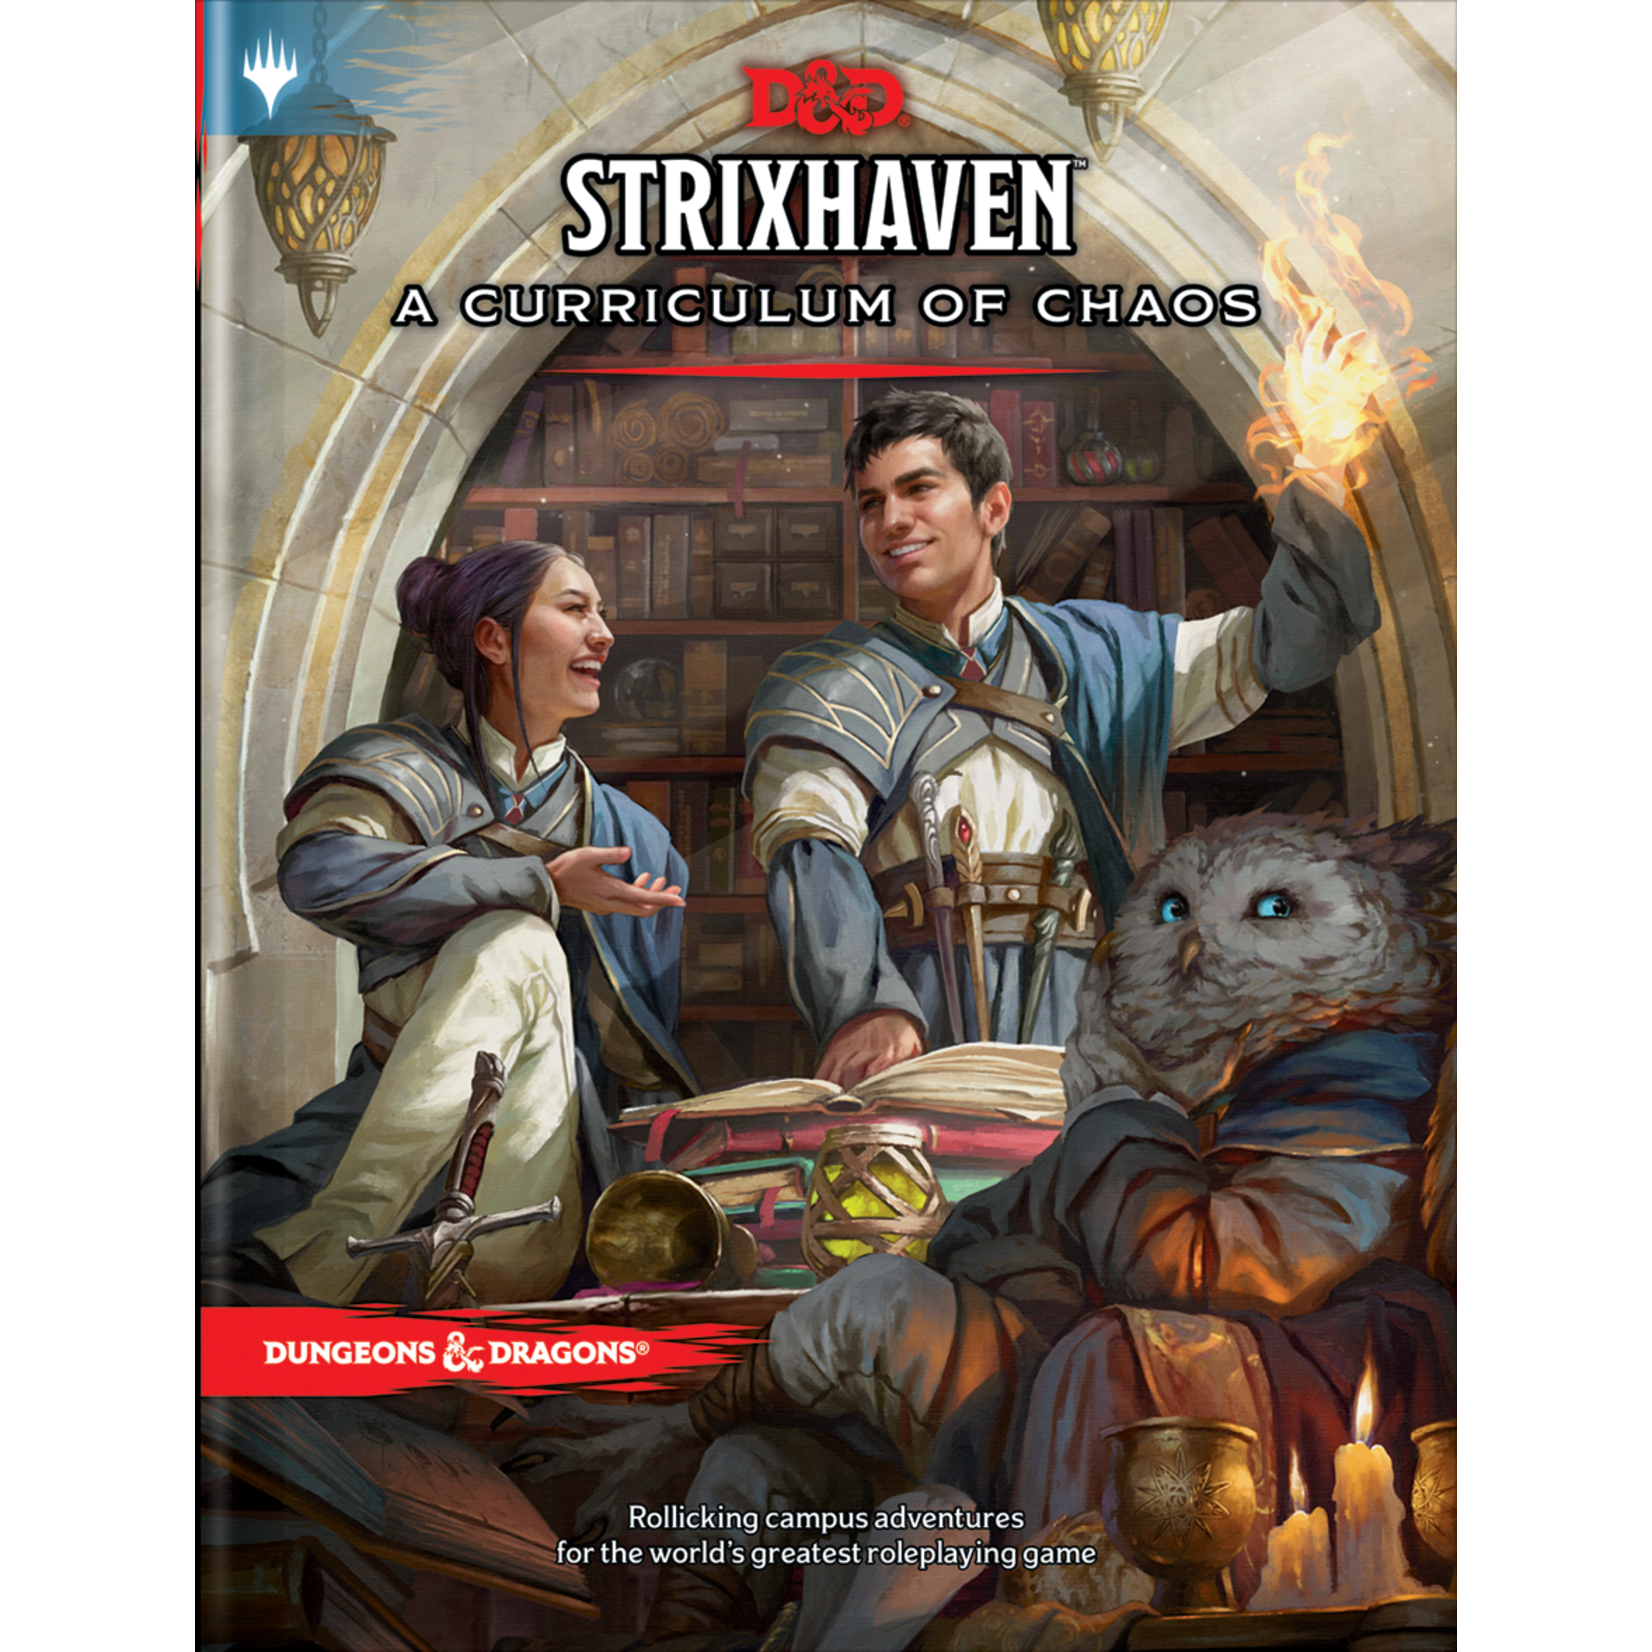 Dungeons & Dragons Dungeons & Dragons 5th Edition: Strixhaven: A Curriculum of Chaos (Regular Cover)